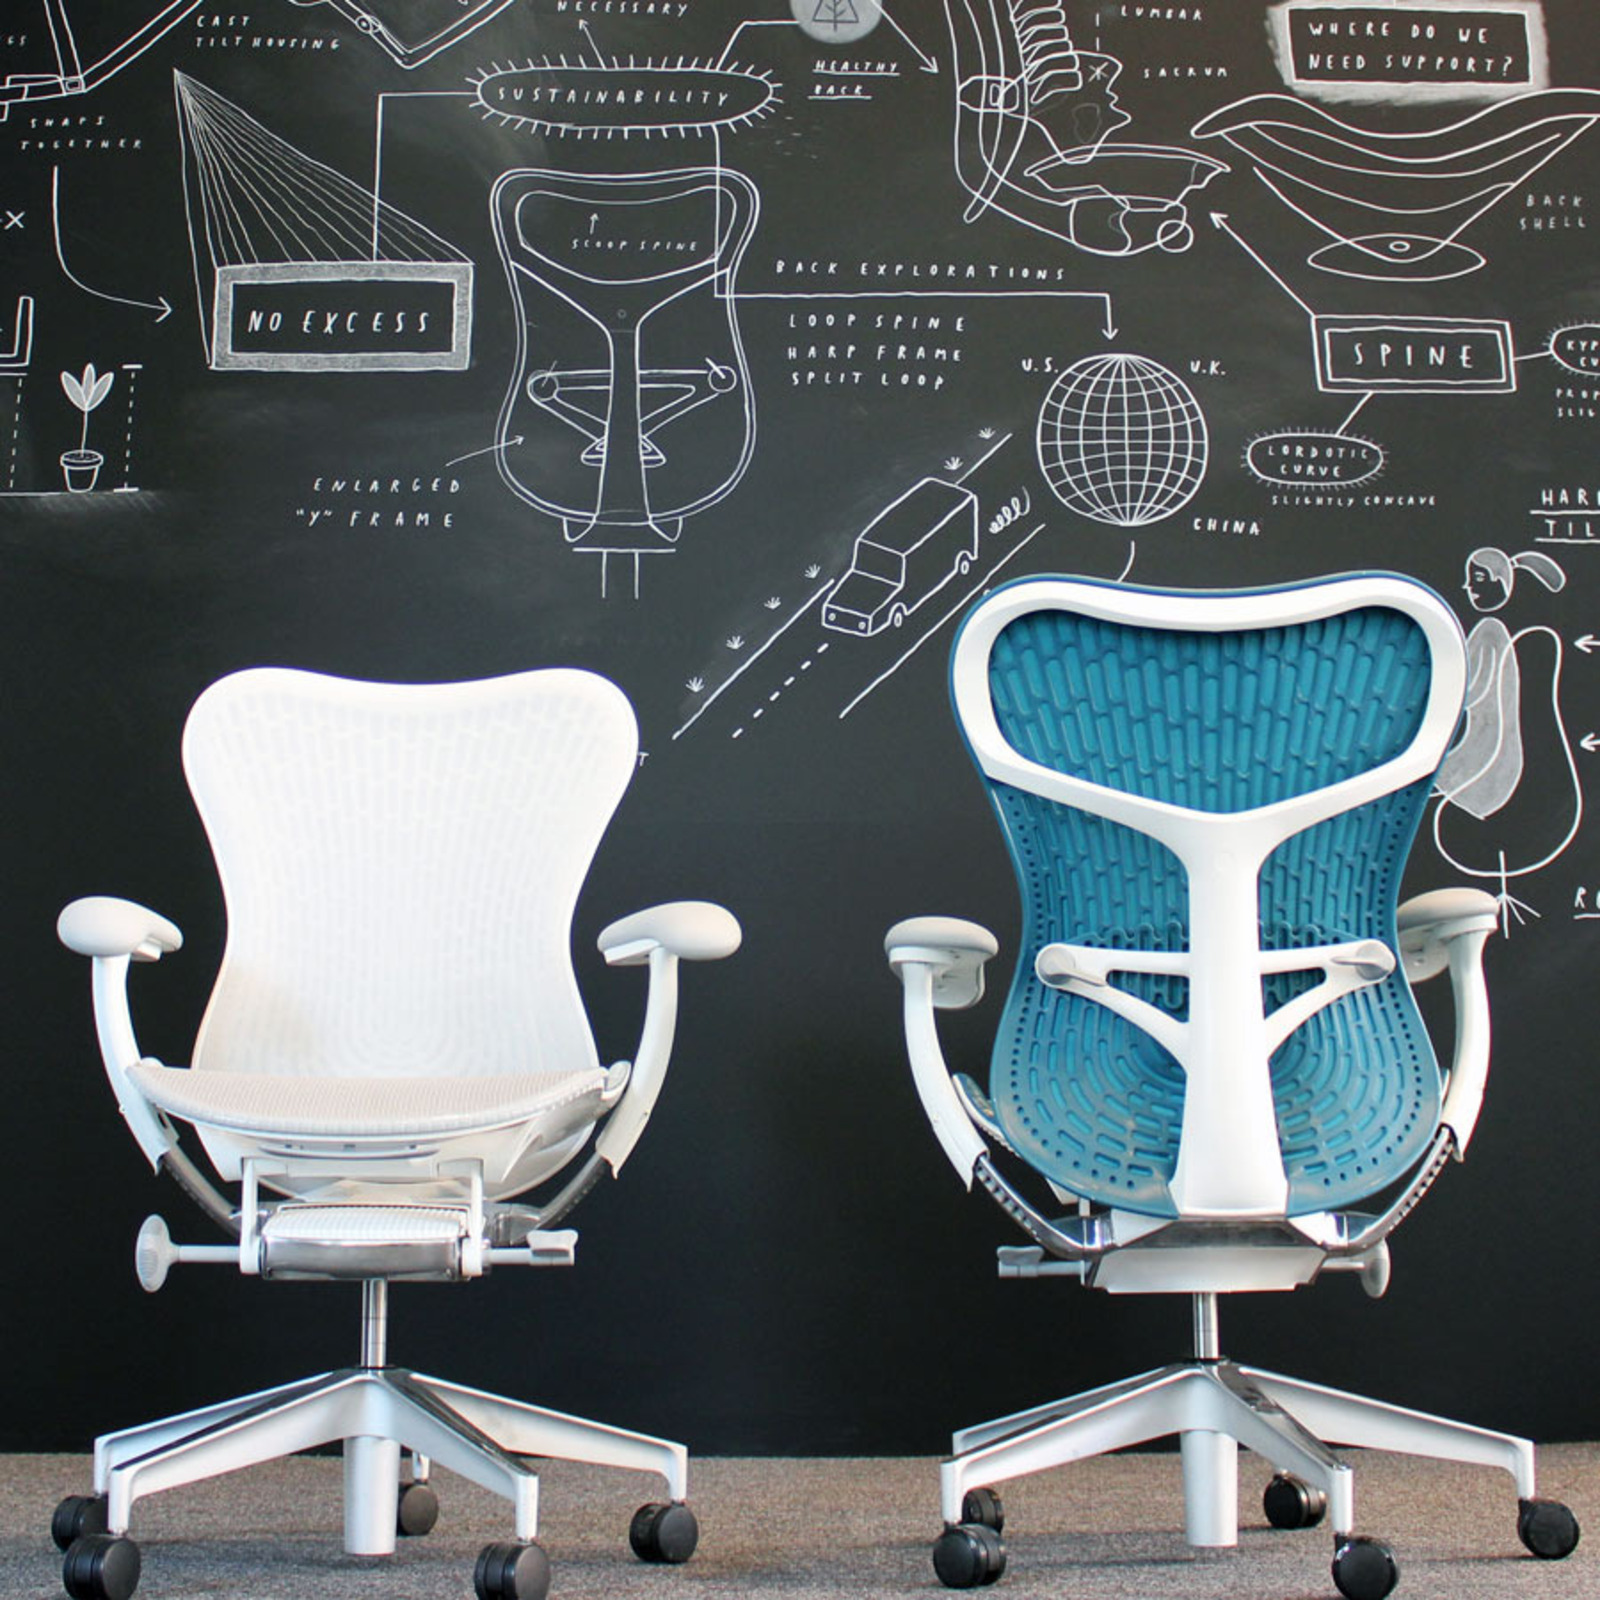 herman miller mirra 2 chair review old high with wheels 1600x1600 what colors would you choose designporn